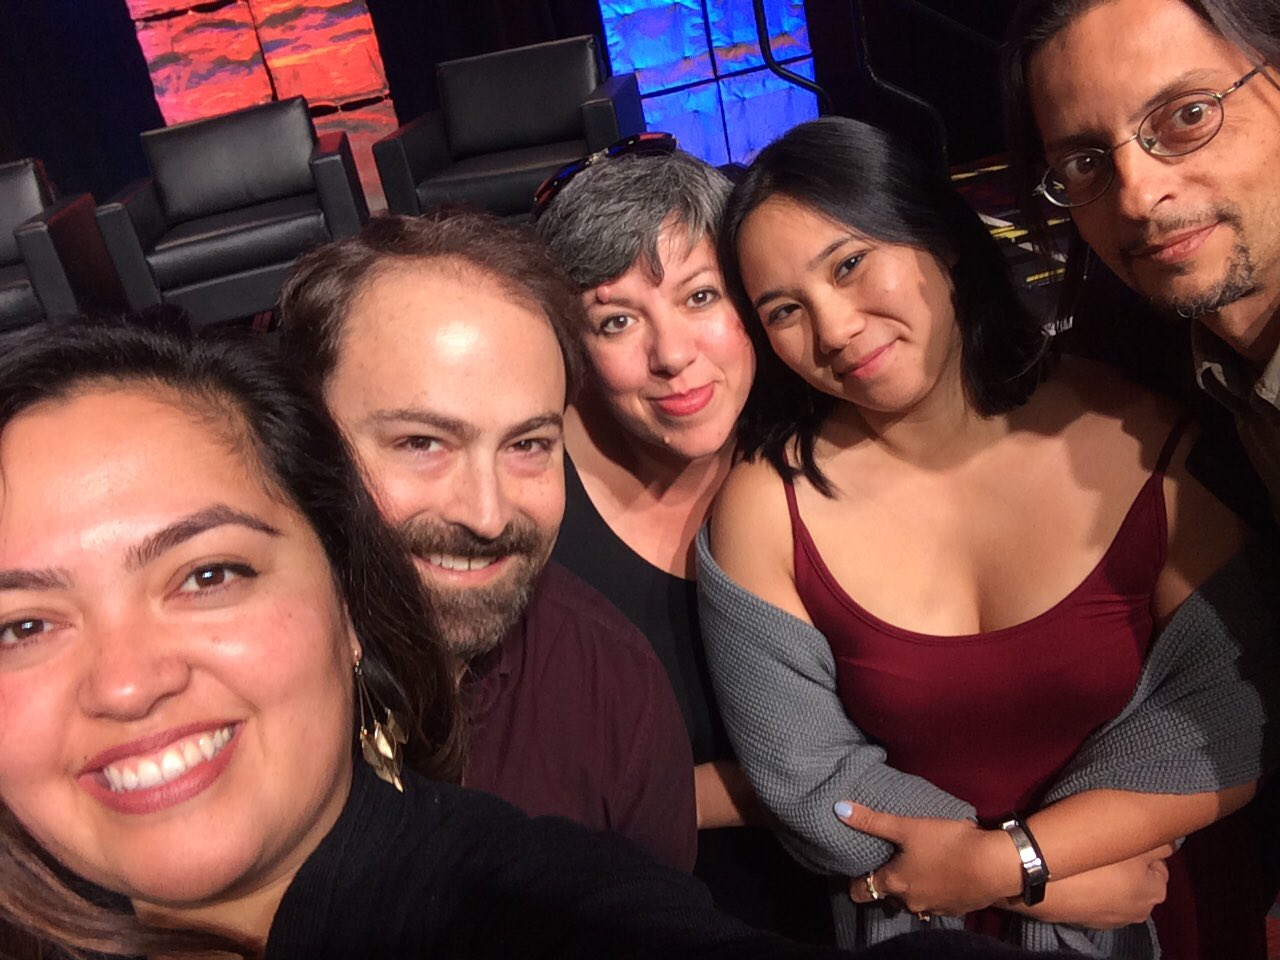 A little behind the scenes selfie! @reportedly is ready for closing keynote! #ona16story #ona16 https://t.co/vxbdcyypd1